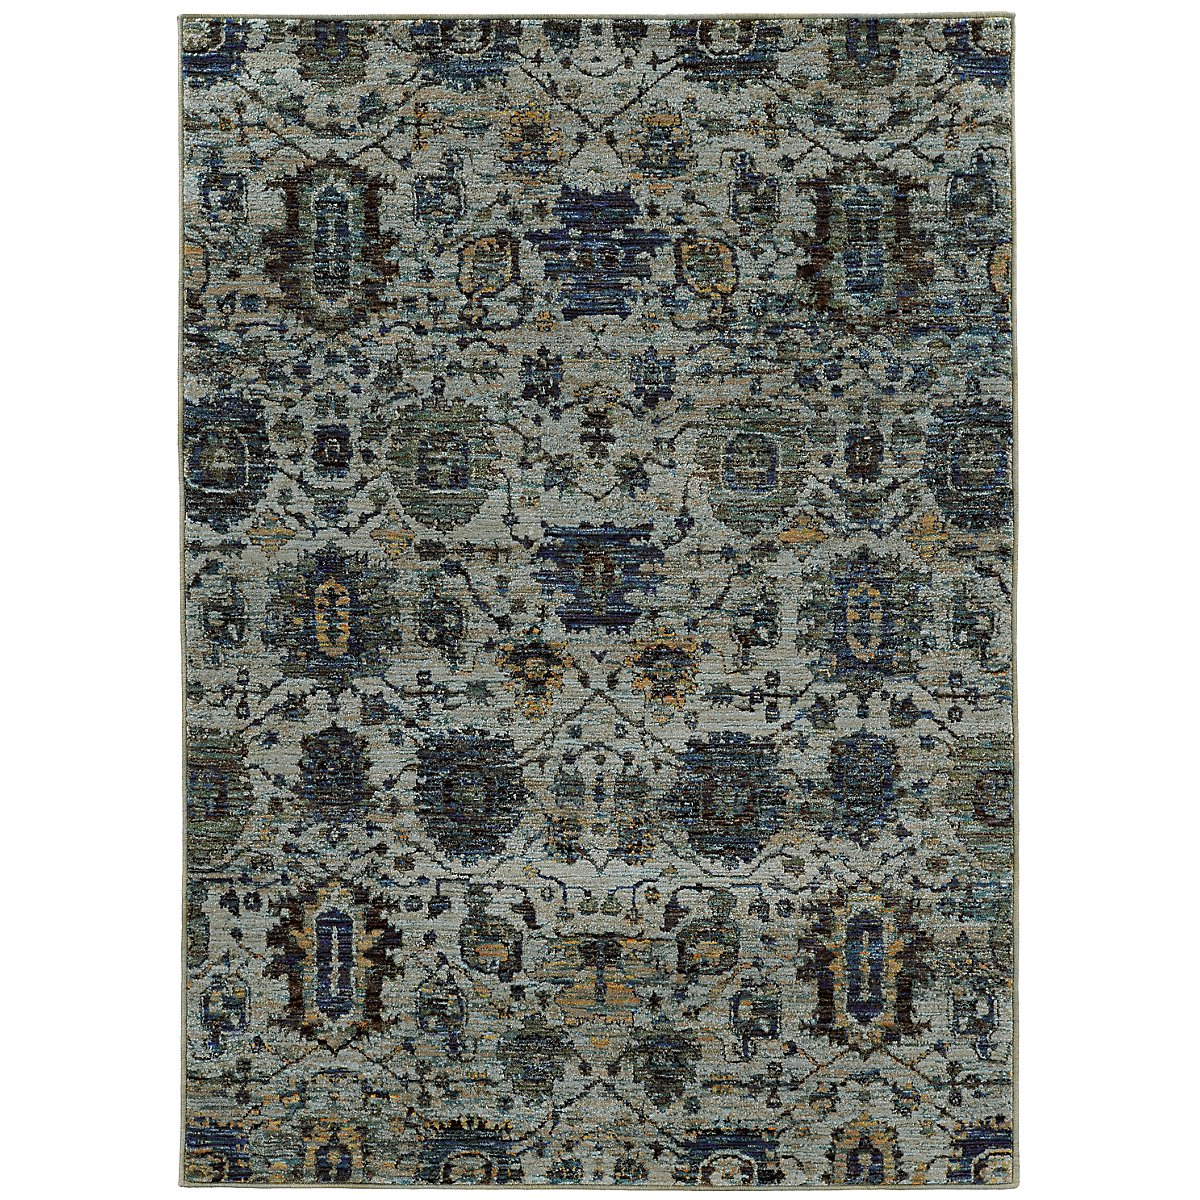 Andora Multicolored 5x8 Area Rug